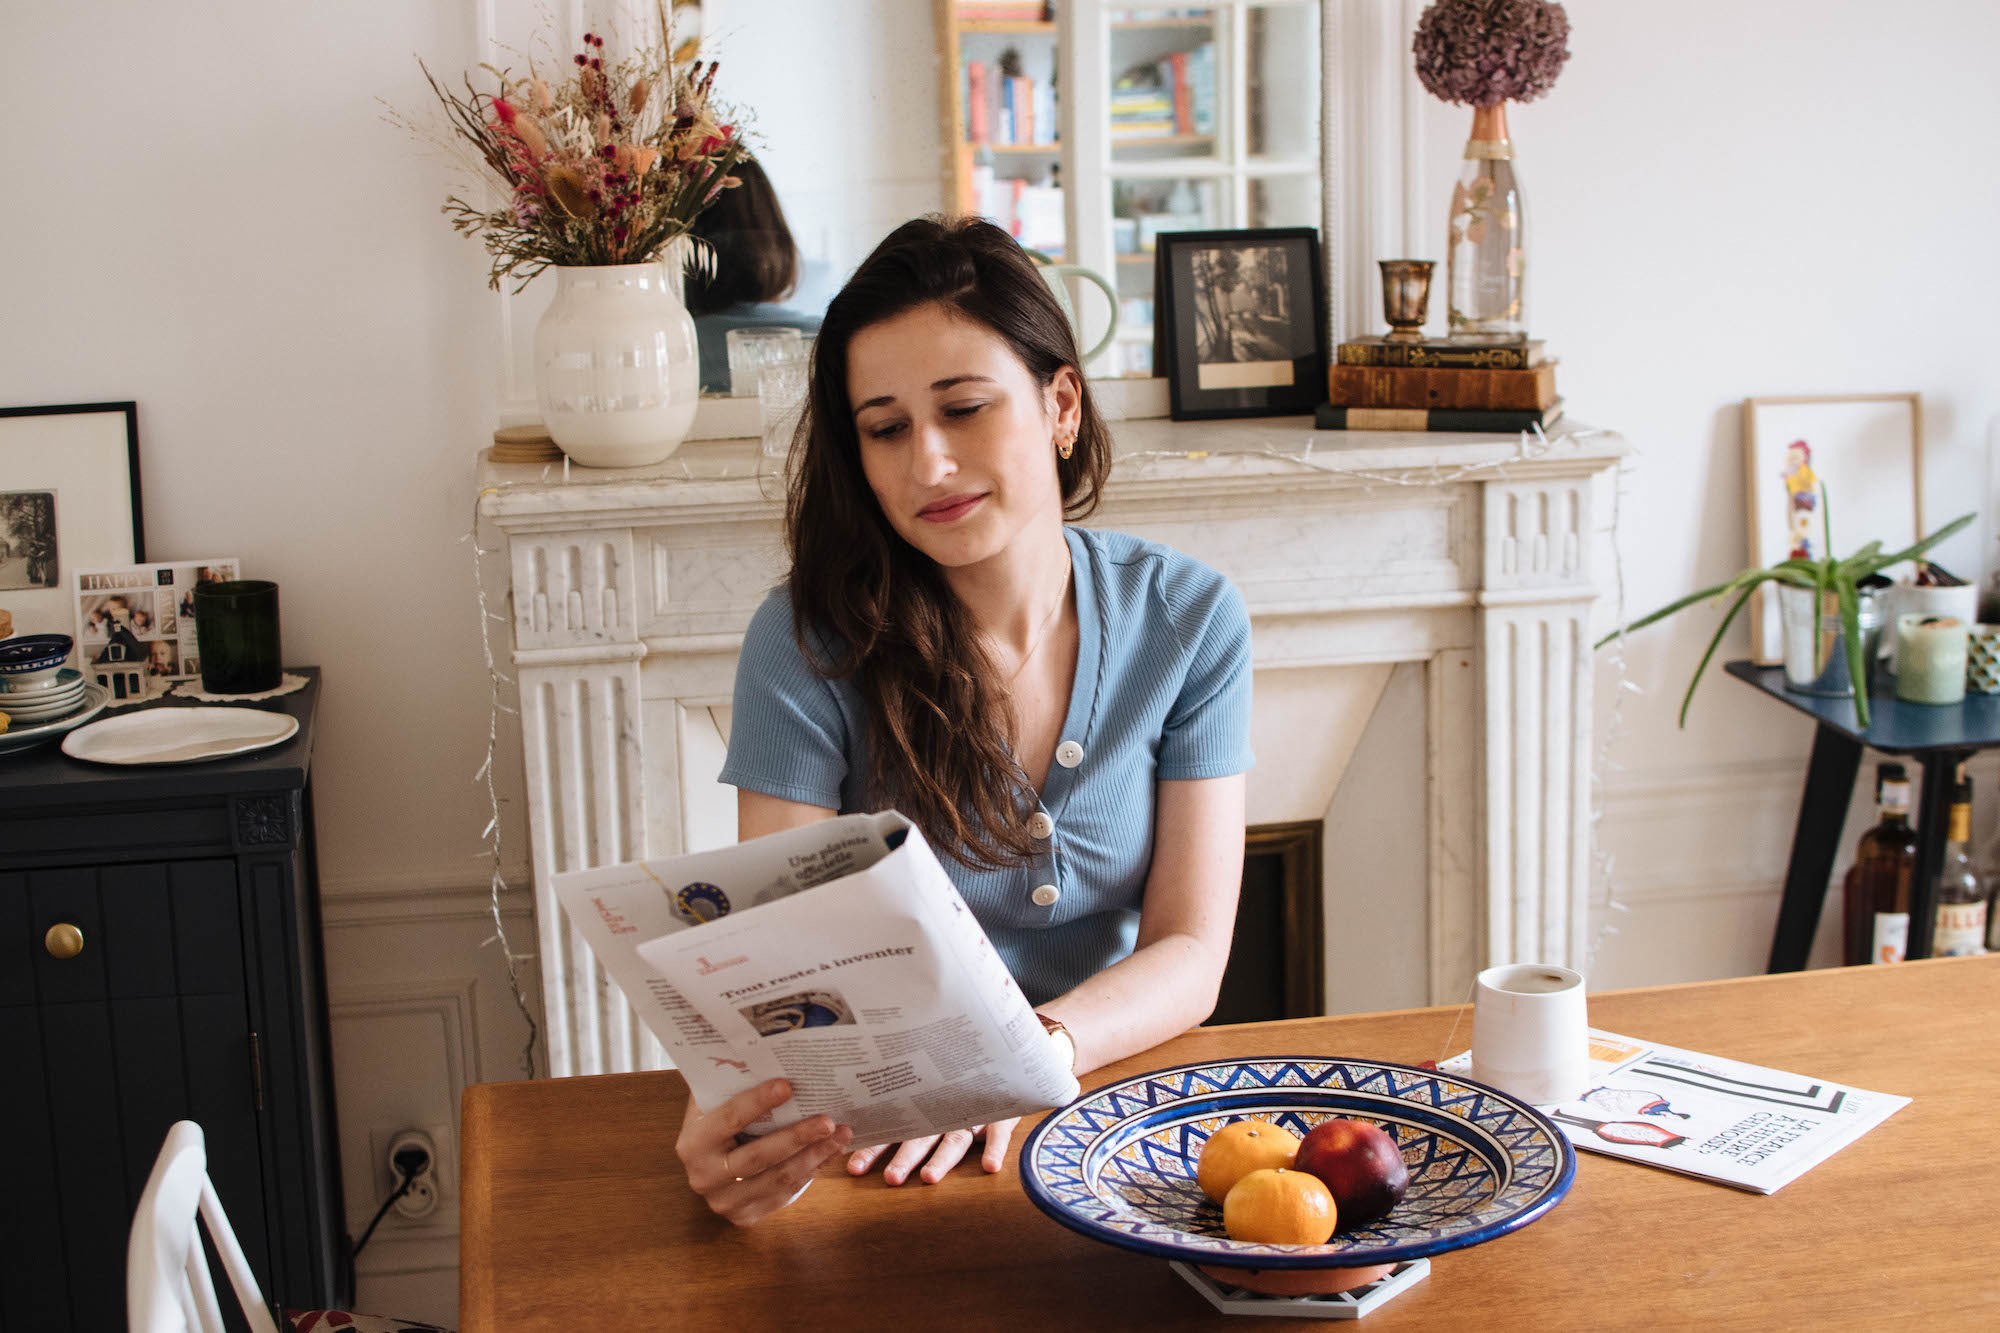 Lindsey Tramuta reading an edition of Le 1 Hebdo, a French weekly print newspaper, in her apartment in Paris' 11th arrondissement.